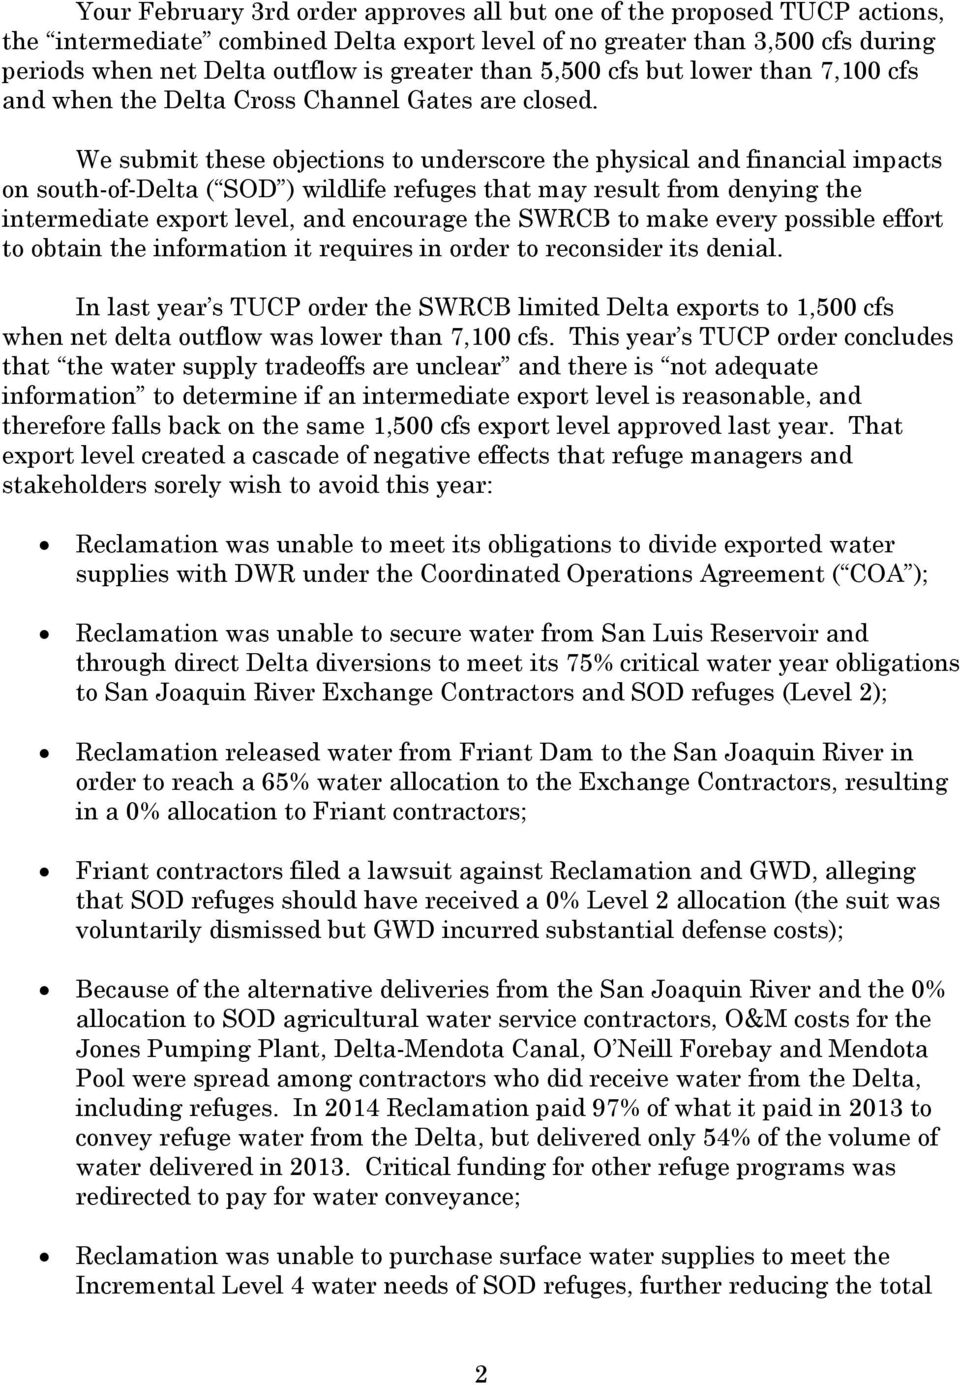 We submit these objections to underscore the physical and financial impacts on south-of-delta ( SOD ) wildlife refuges that may result from denying the intermediate export level, and encourage the